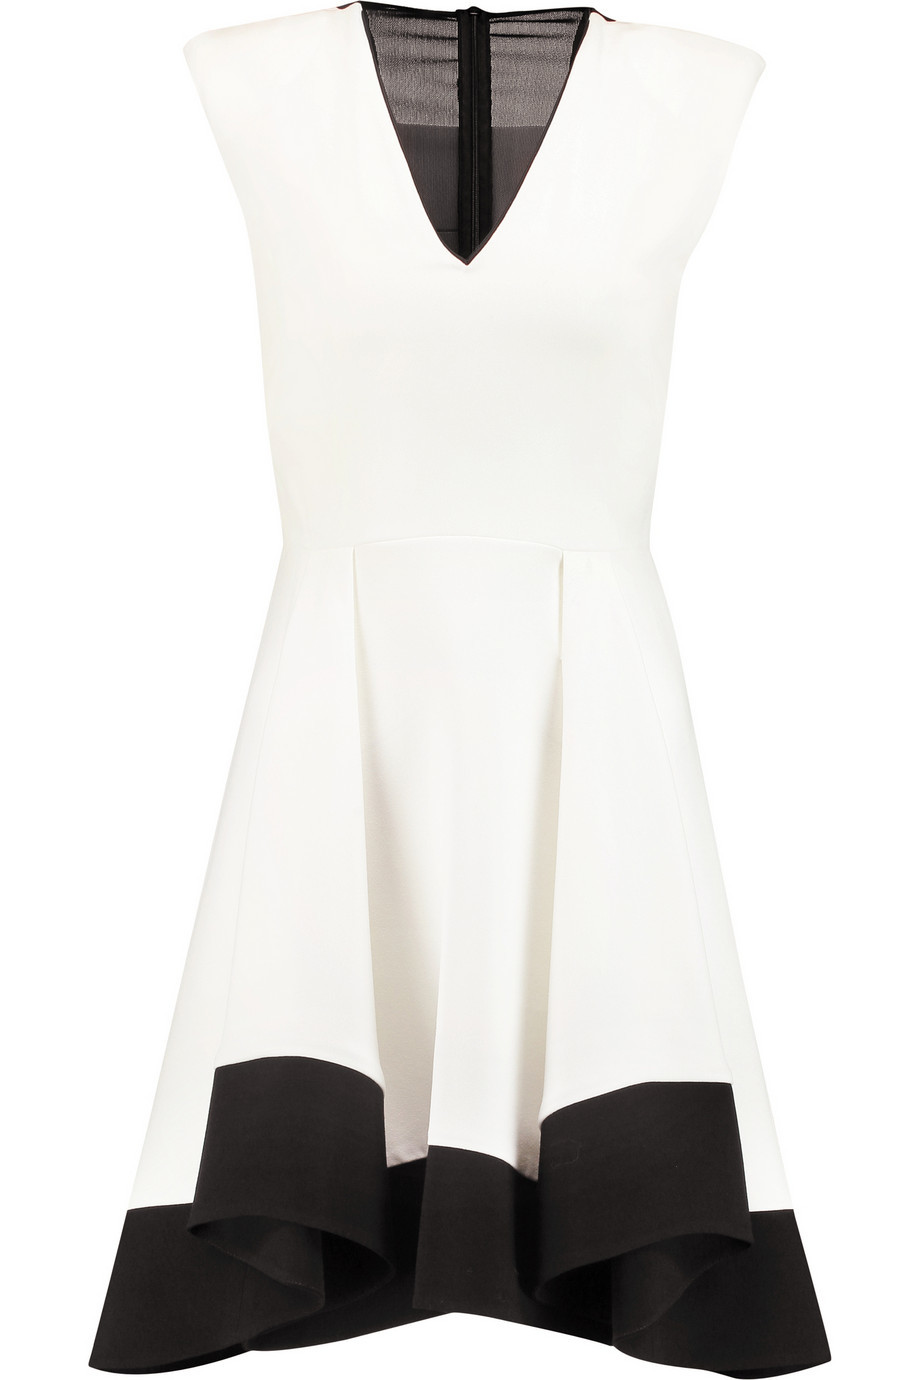 Two Tone Mesh Paneled Crepe Dress Ecru - length: mid thigh; neckline: v-neck; sleeve style: capped; predominant colour: ivory/cream; secondary colour: black; occasions: evening; fit: fitted at waist & bust; style: fit & flare; sleeve length: sleeveless; pattern type: fabric; pattern size: standard; pattern: colourblock; texture group: woven light midweight; fibres: viscose/rayon - mix; season: s/s 2016; wardrobe: event